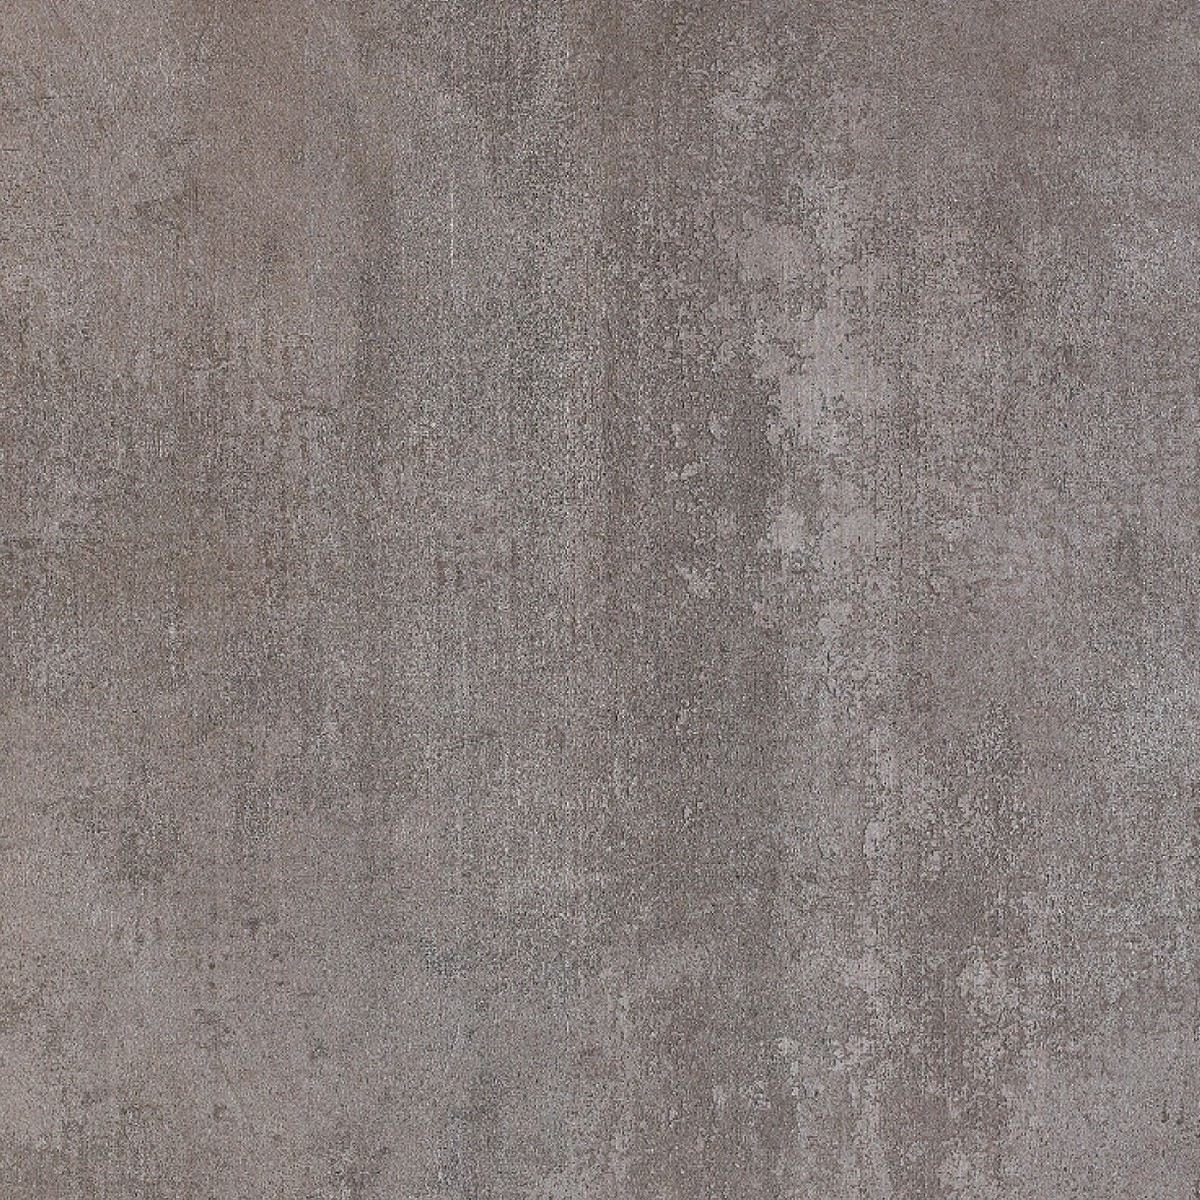 Concrete Dark Grey, matt, 600x600x20 mm